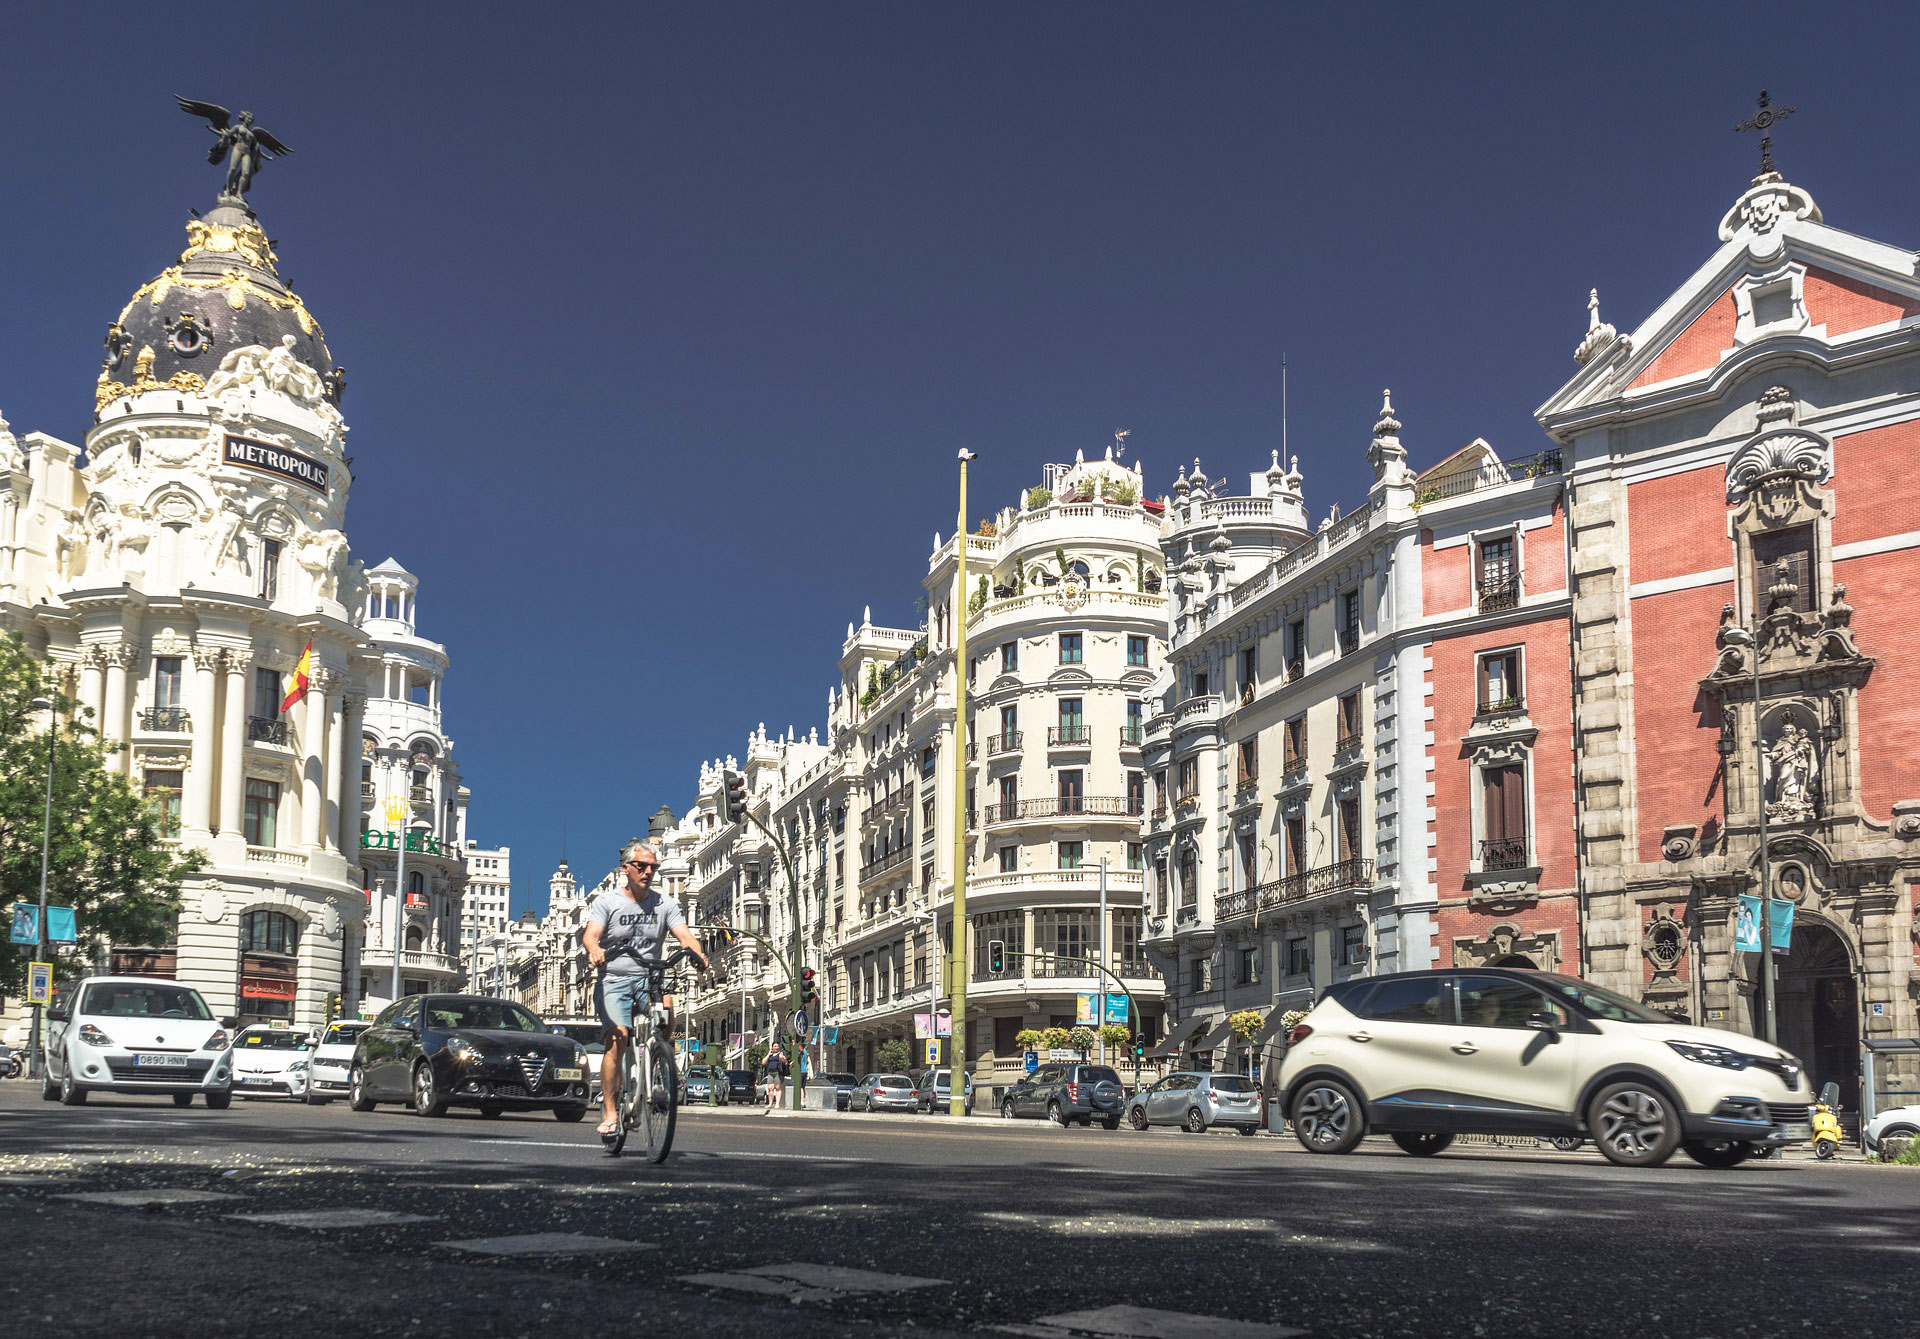 Thumbnail image for Madrid is best city in Europe for expats, says survey